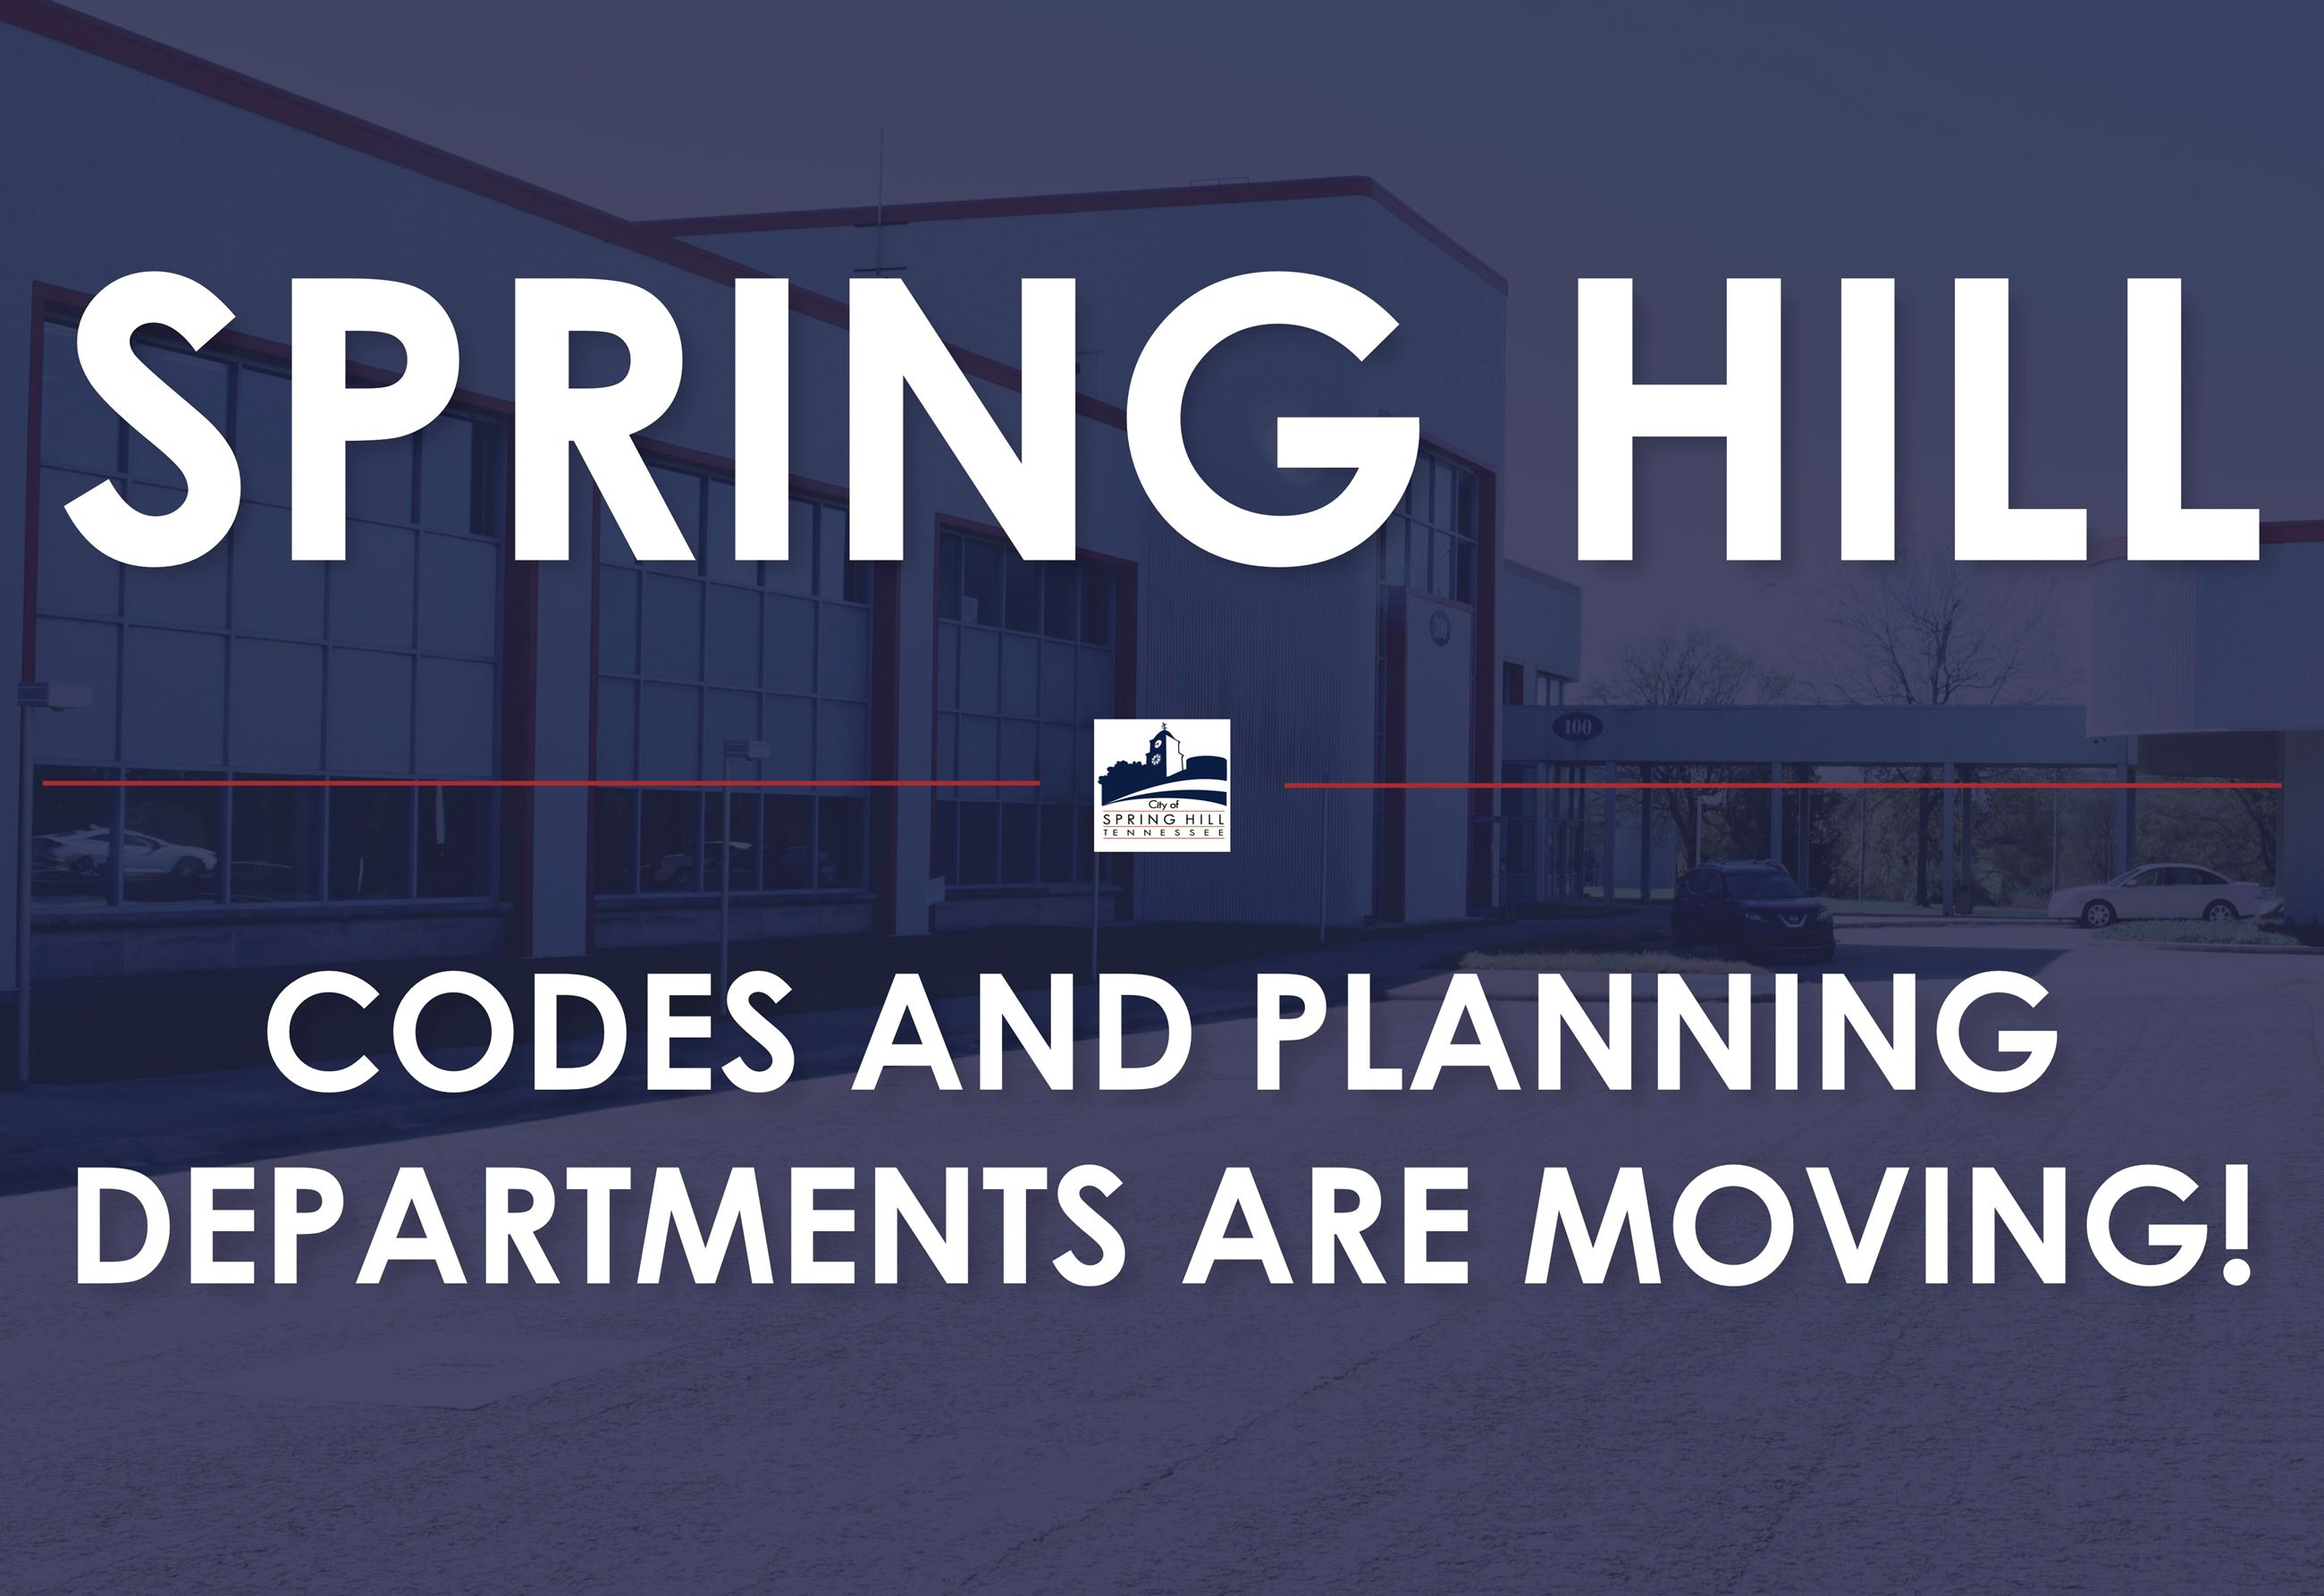 Codes and Planning moving